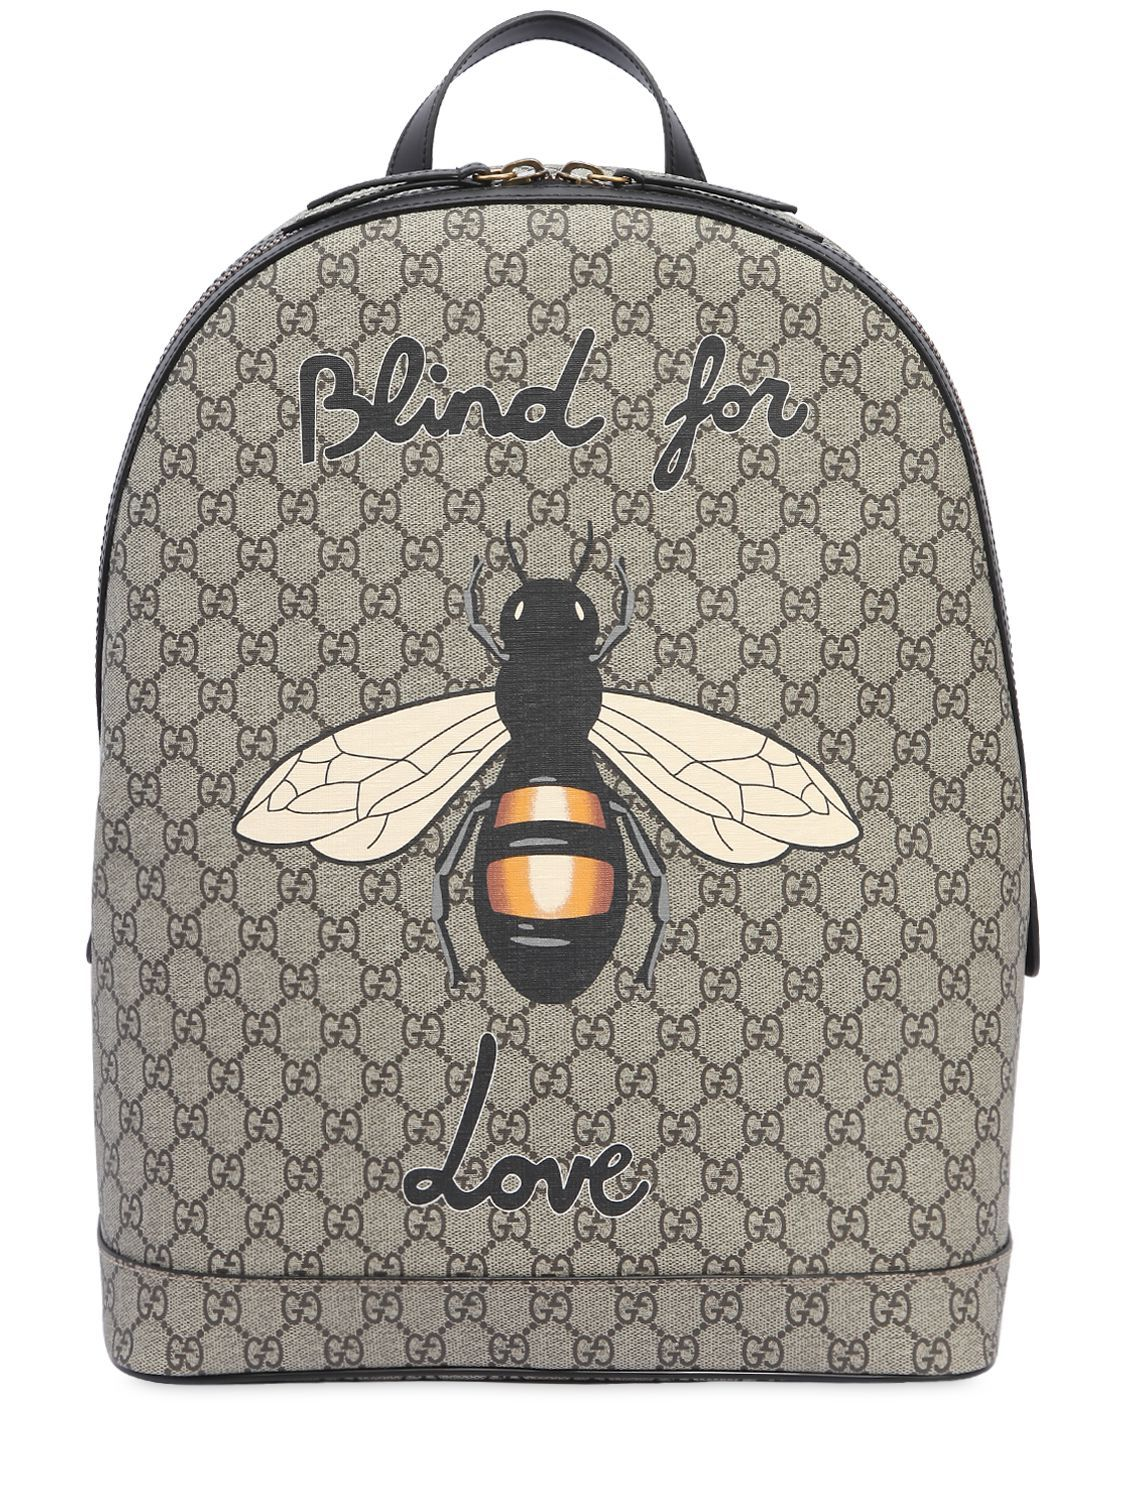 20f7e7512f4b GUCCI BEE PRINTED GG SUPREME BACKPACK. #gucci #bags #leather #lining #canvas  #backpacks #